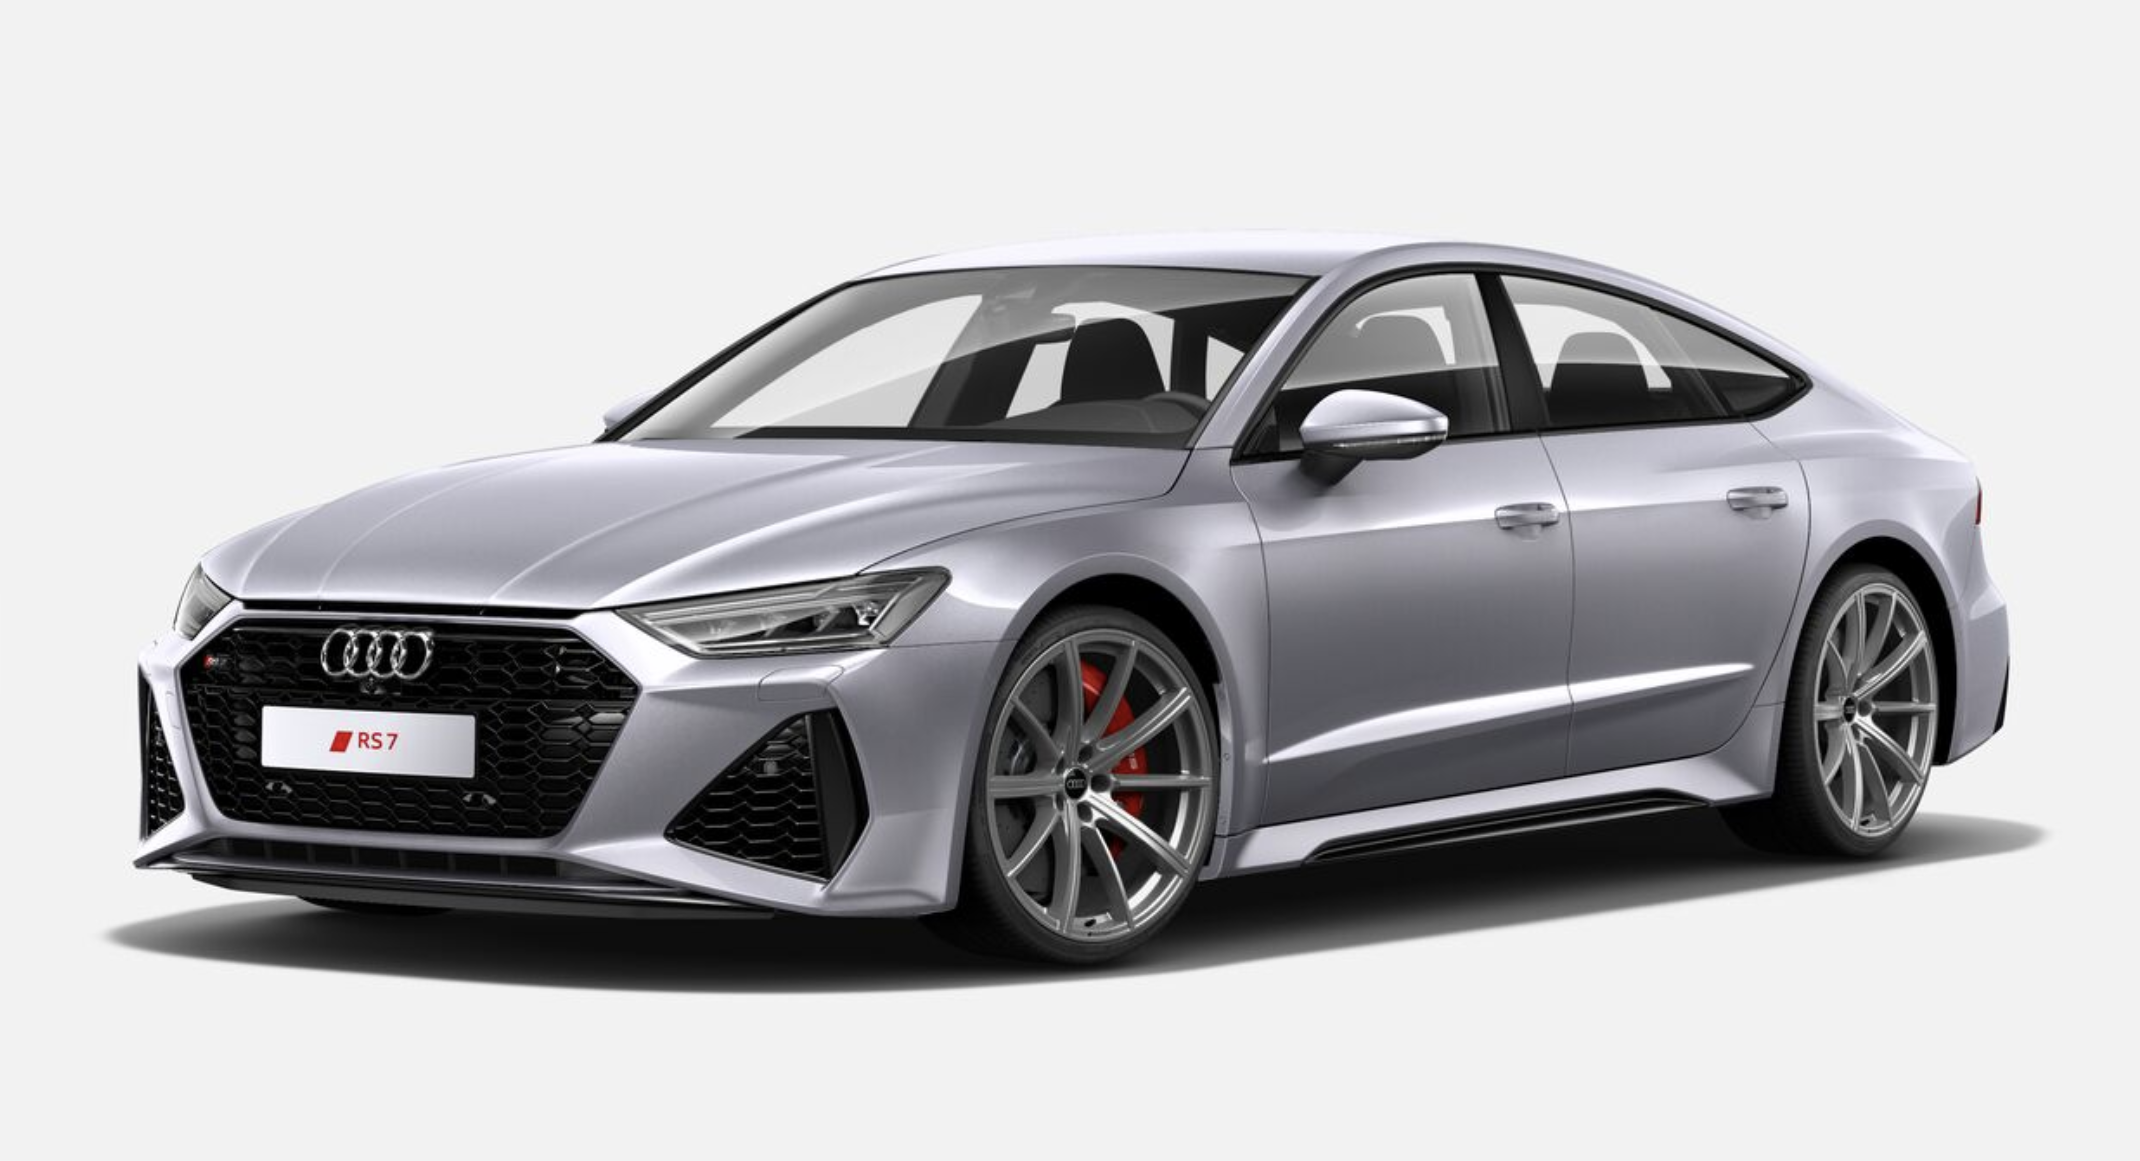 2020 Audi Rs7 Sportback Launched In India At Inr 1 94 Crore Shifting Gears